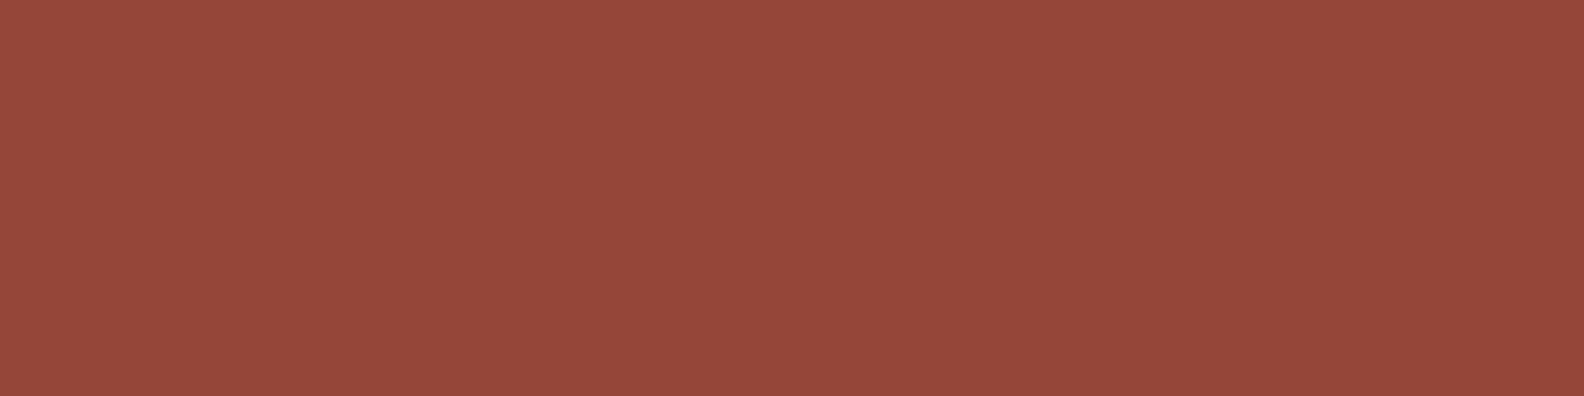 1584x396 Chestnut Solid Color Background